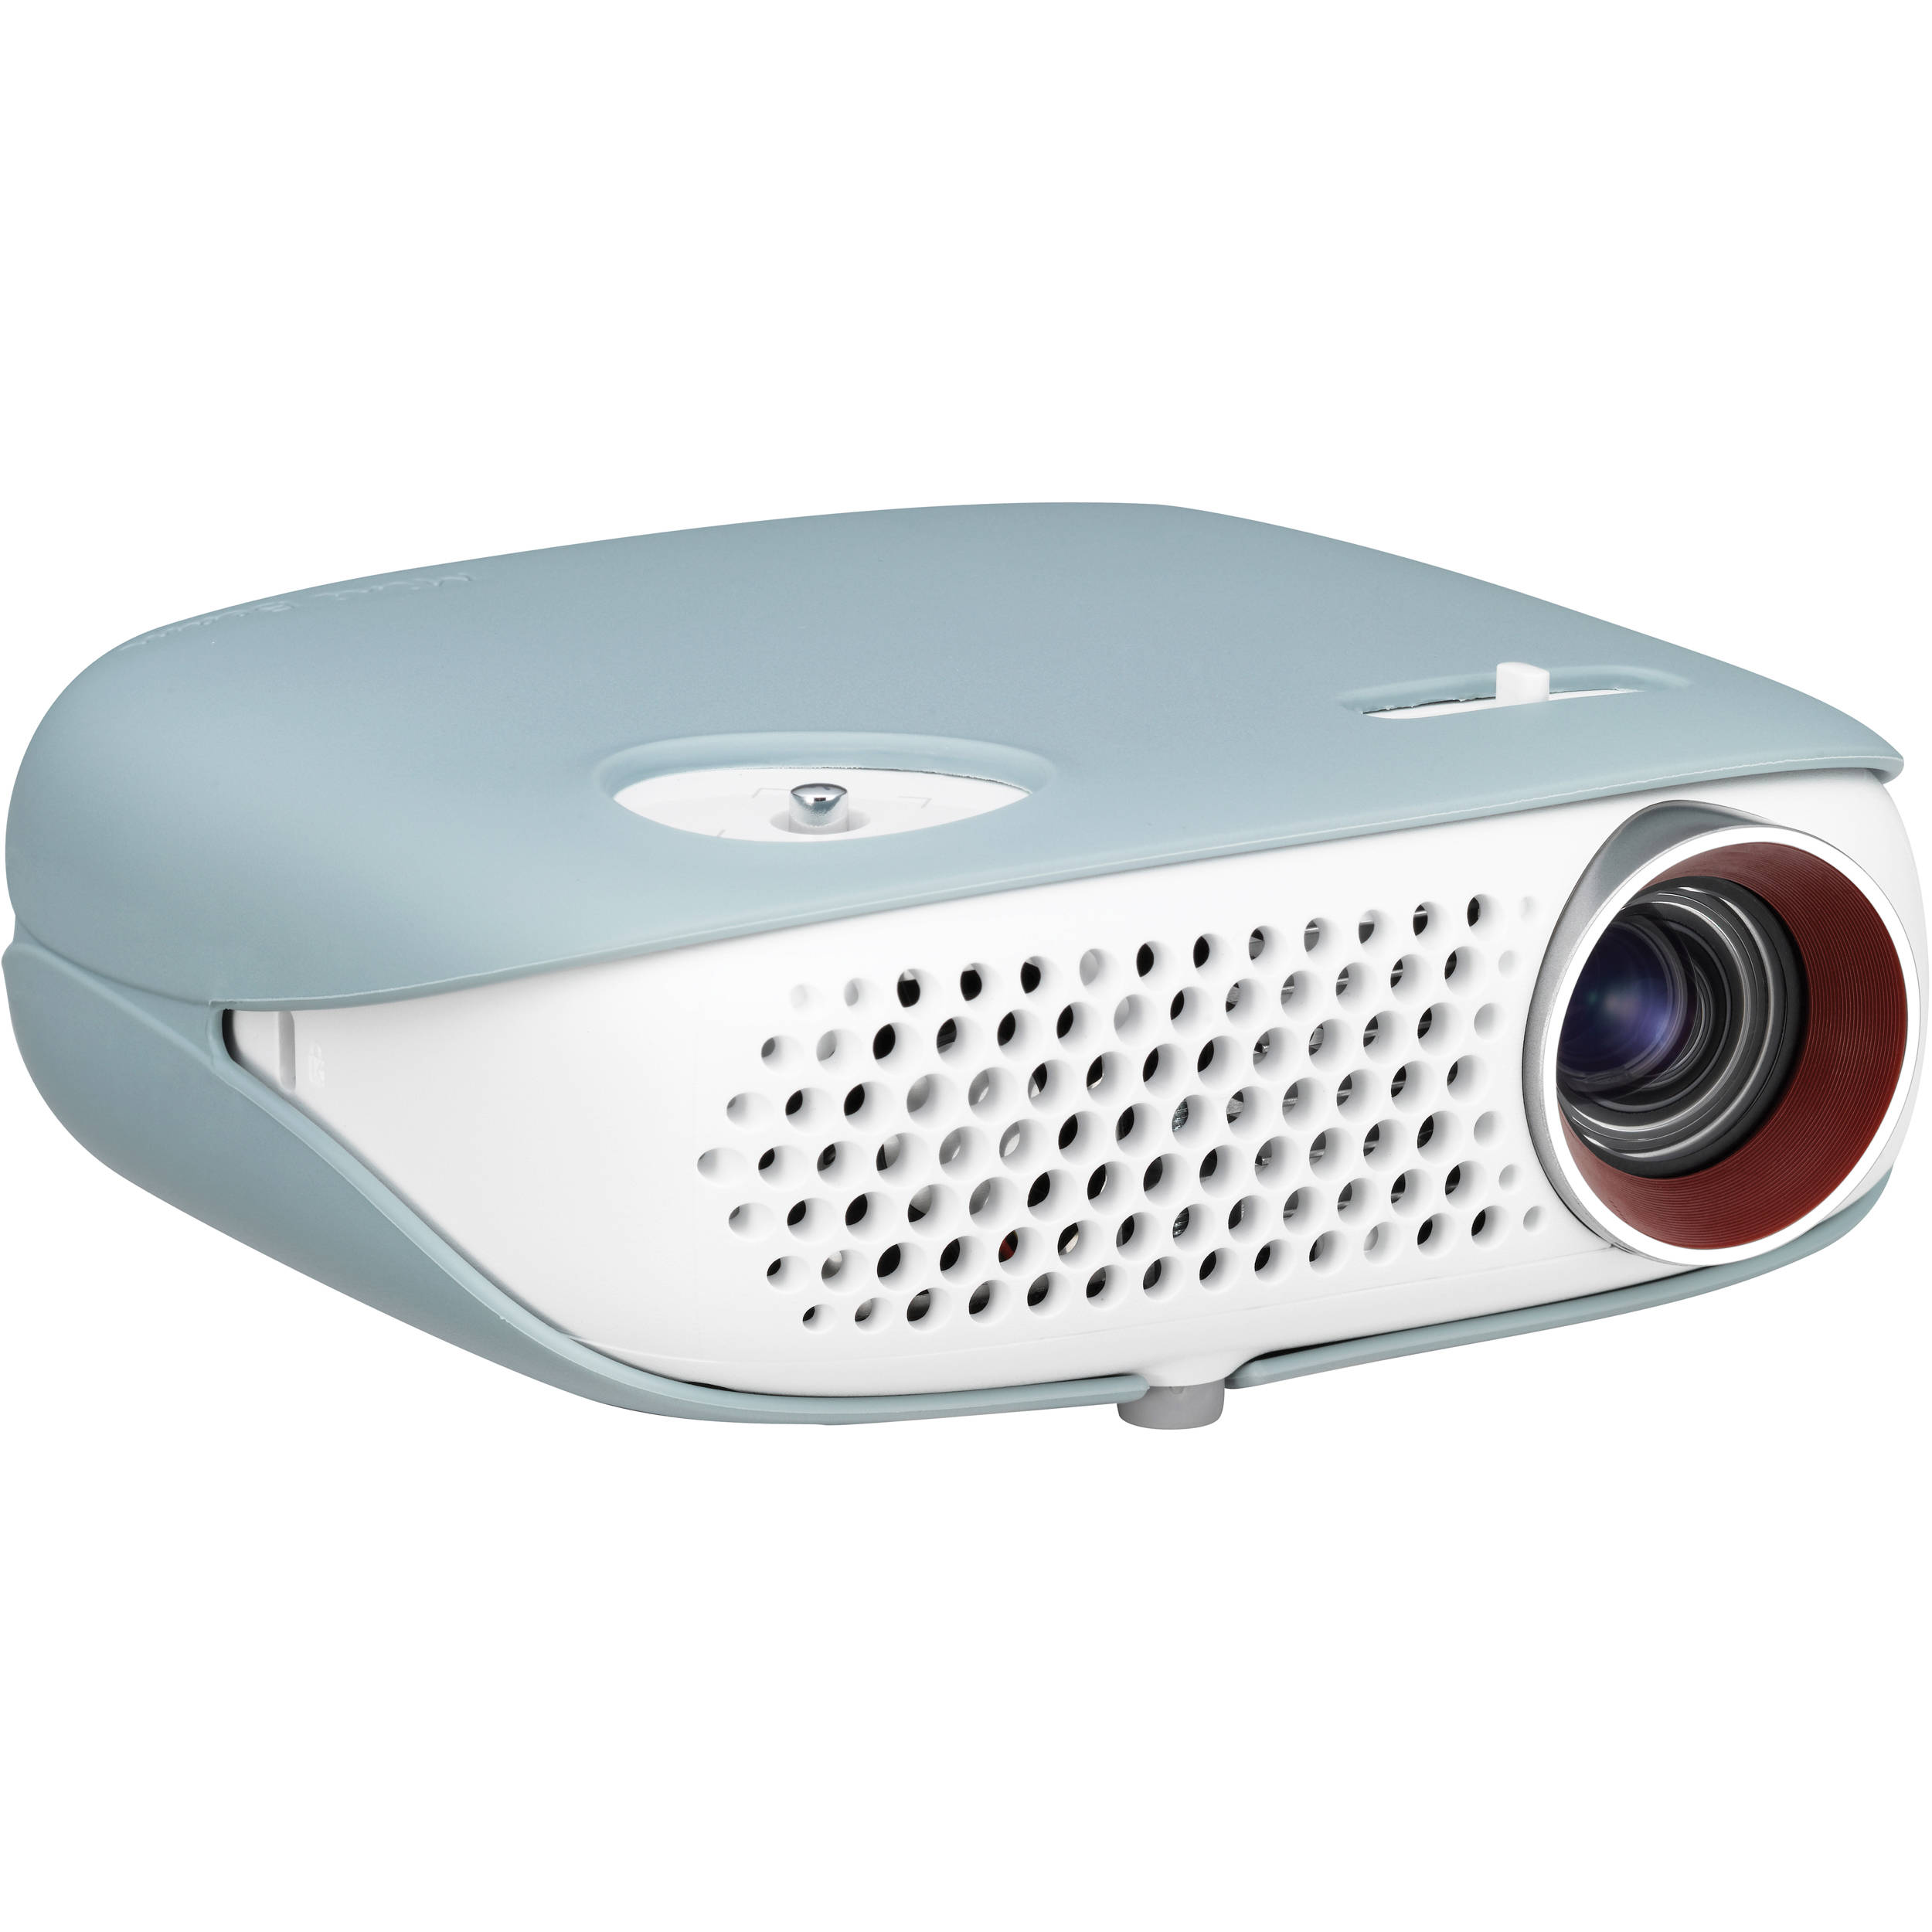 Lg pw800 portable hd led projector pw800 b h photo video for Usb projector reviews